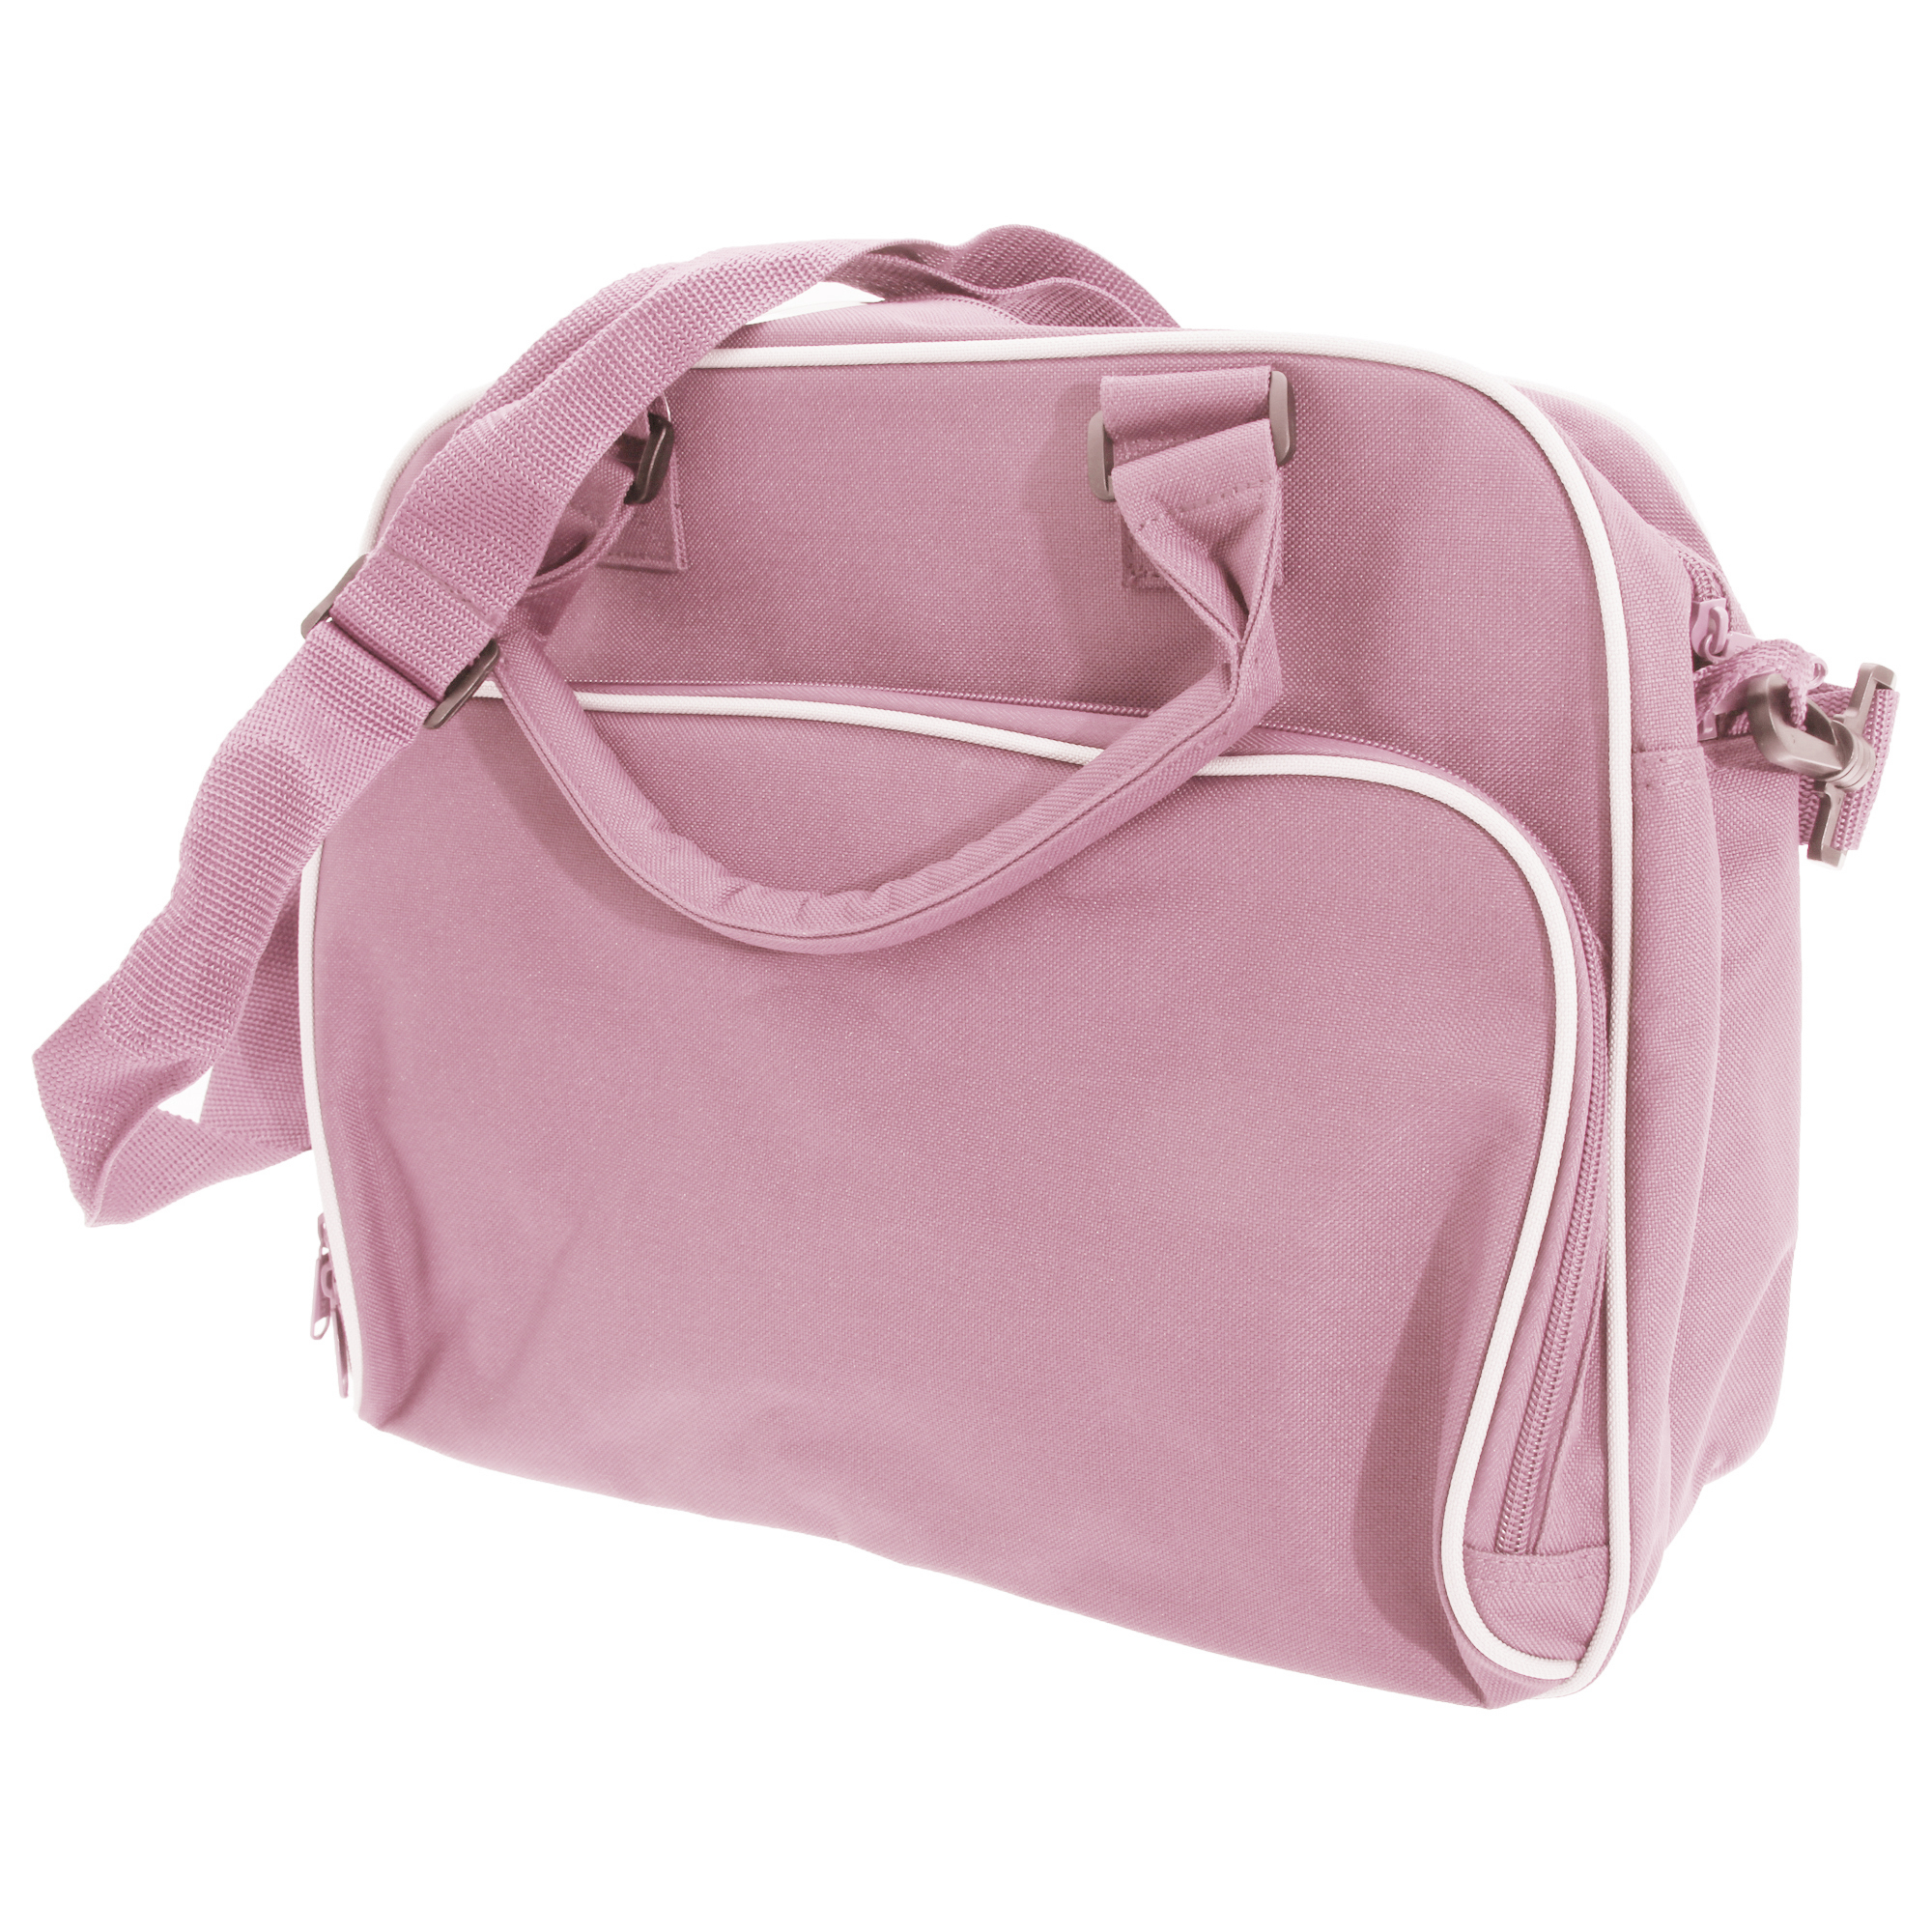 Bagbase Compact Junior Dance Messenger Bag (15 Litres) (One Size) (Classic Pink/Light Grey)